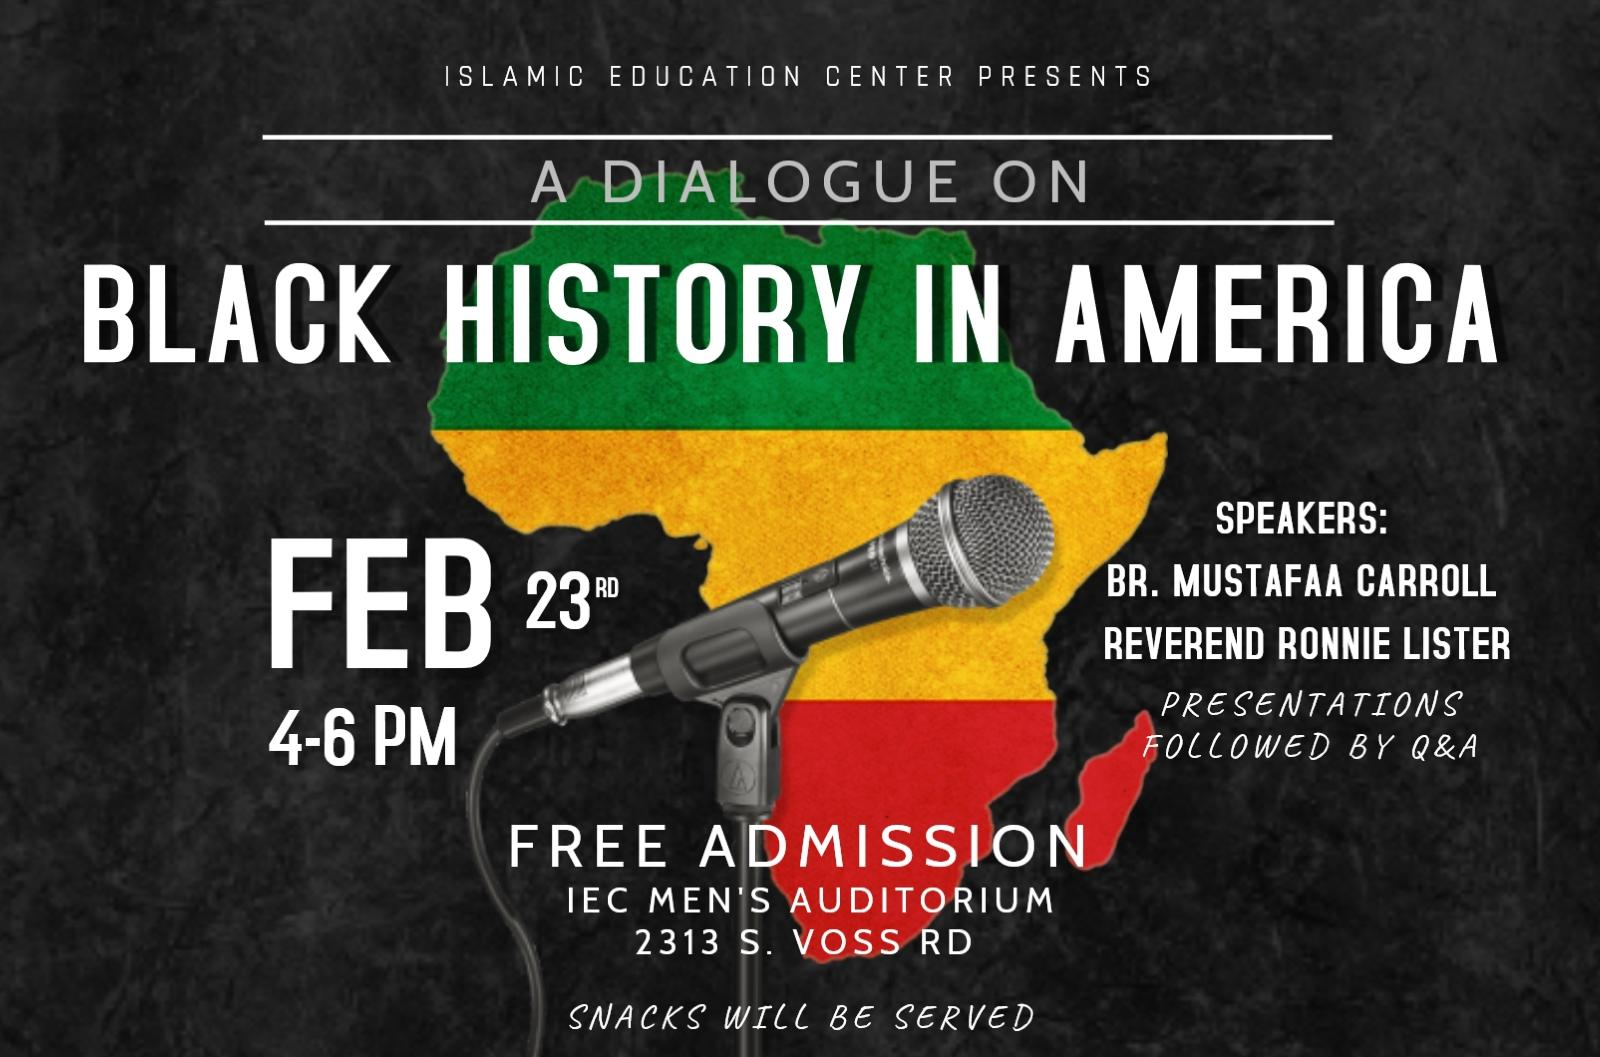 A Dialogue on Black History In America – Islamic Education